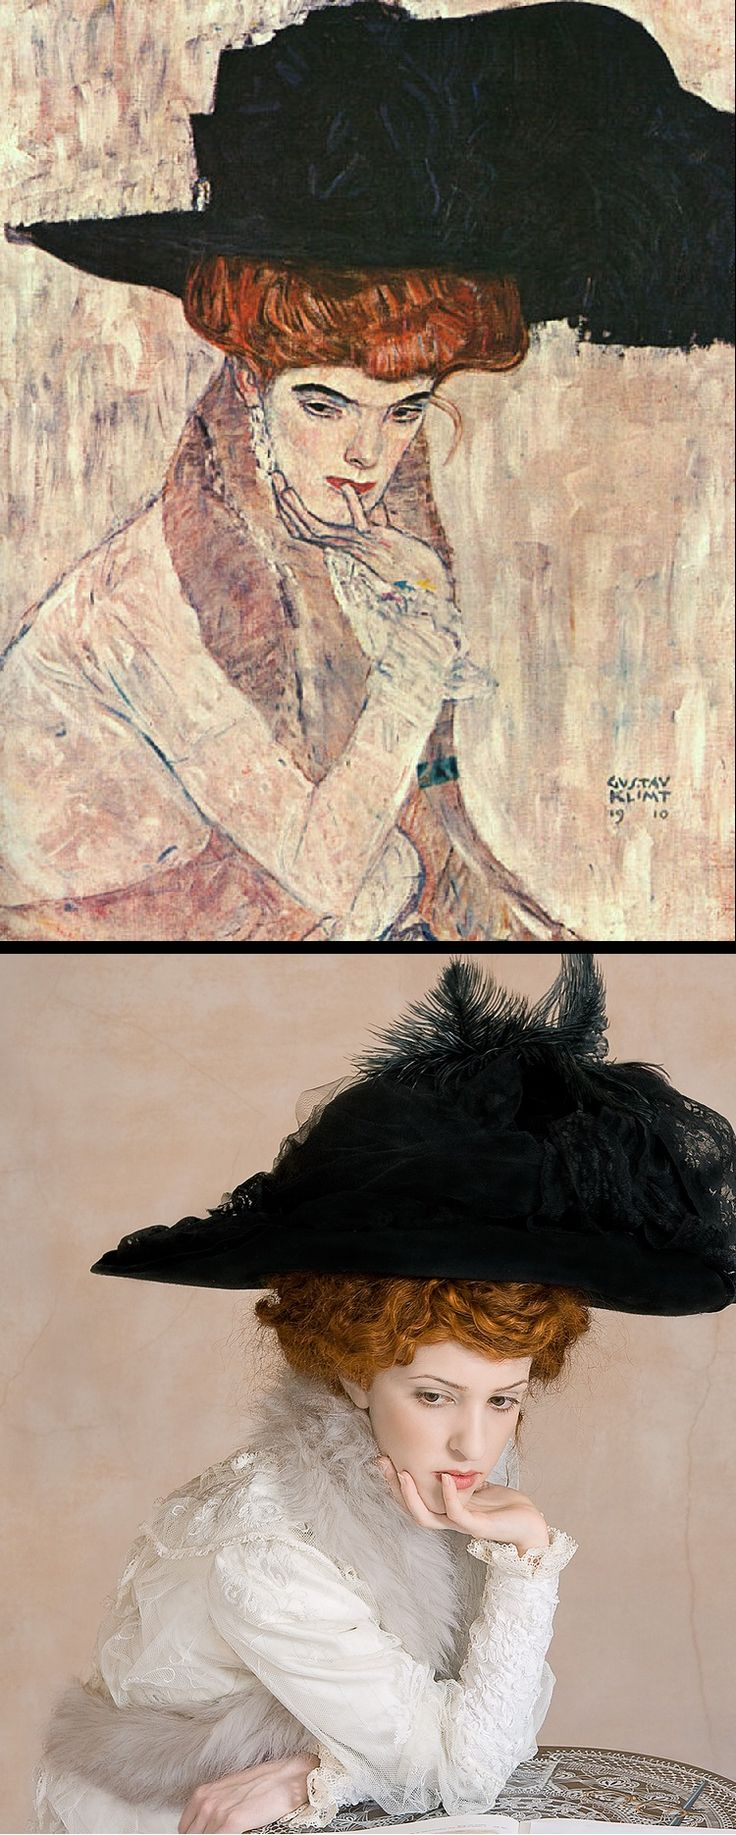 The Black Hat by Gustav Klimt (1910) / The Black Hat by The Essence of Decadence http://www.tanialazlo.com/the_essence_of_decadence.html